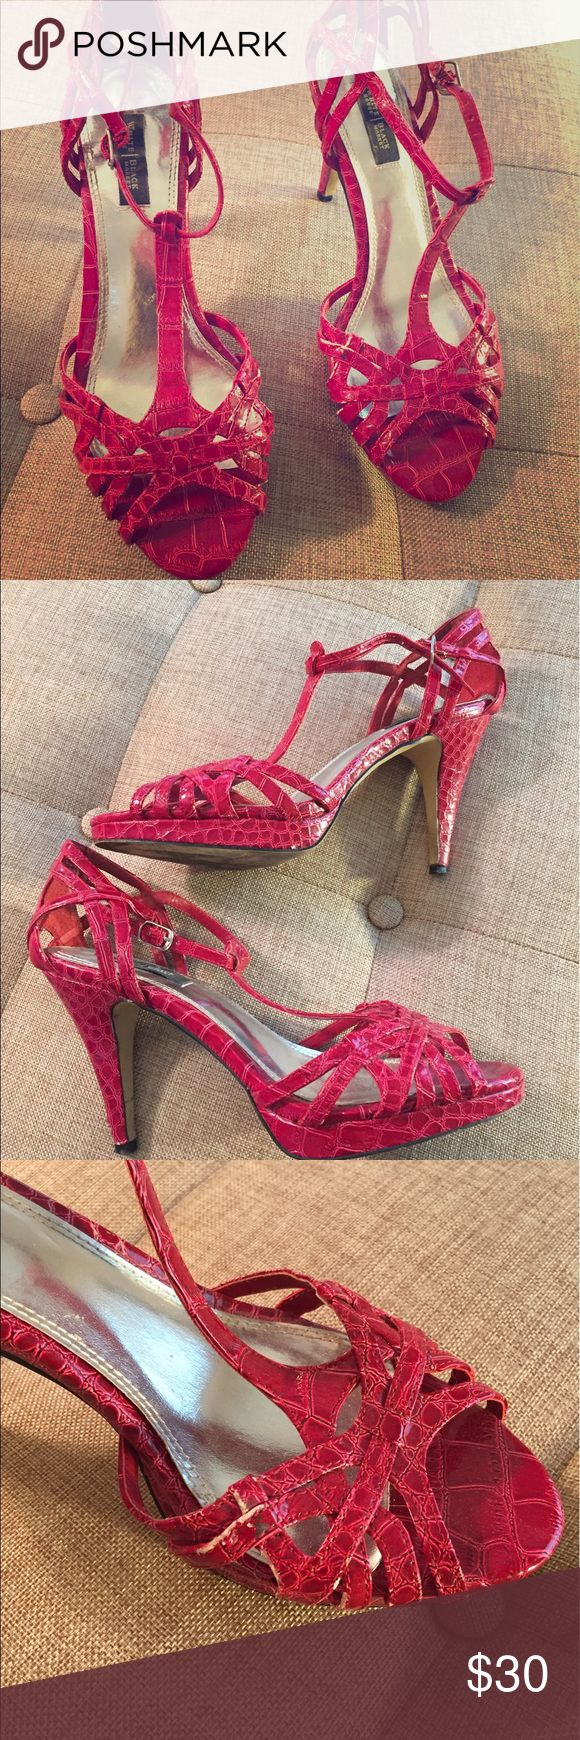 White House Black Market red strappy high heels Beautiful and fun shoes.  Lightly worn with a couple small scuff marks (hardly noticeable).  4 inch heel, leather red snake skin print. White House Black Market Shoes Heels